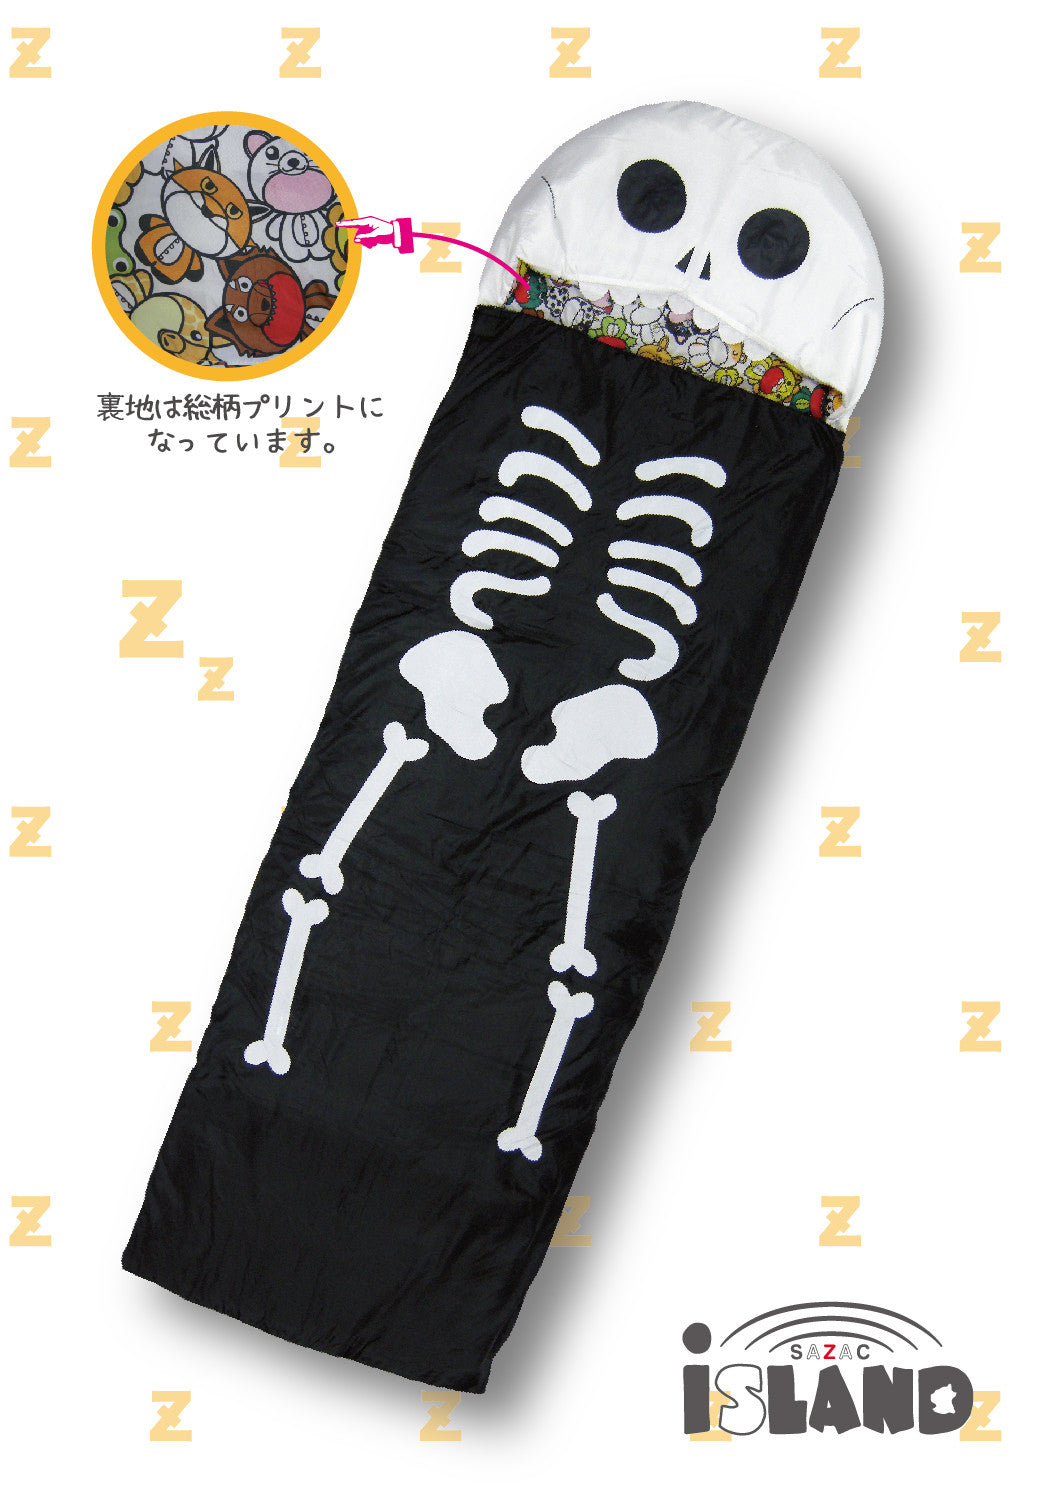 Skeleton Sleeping Bag